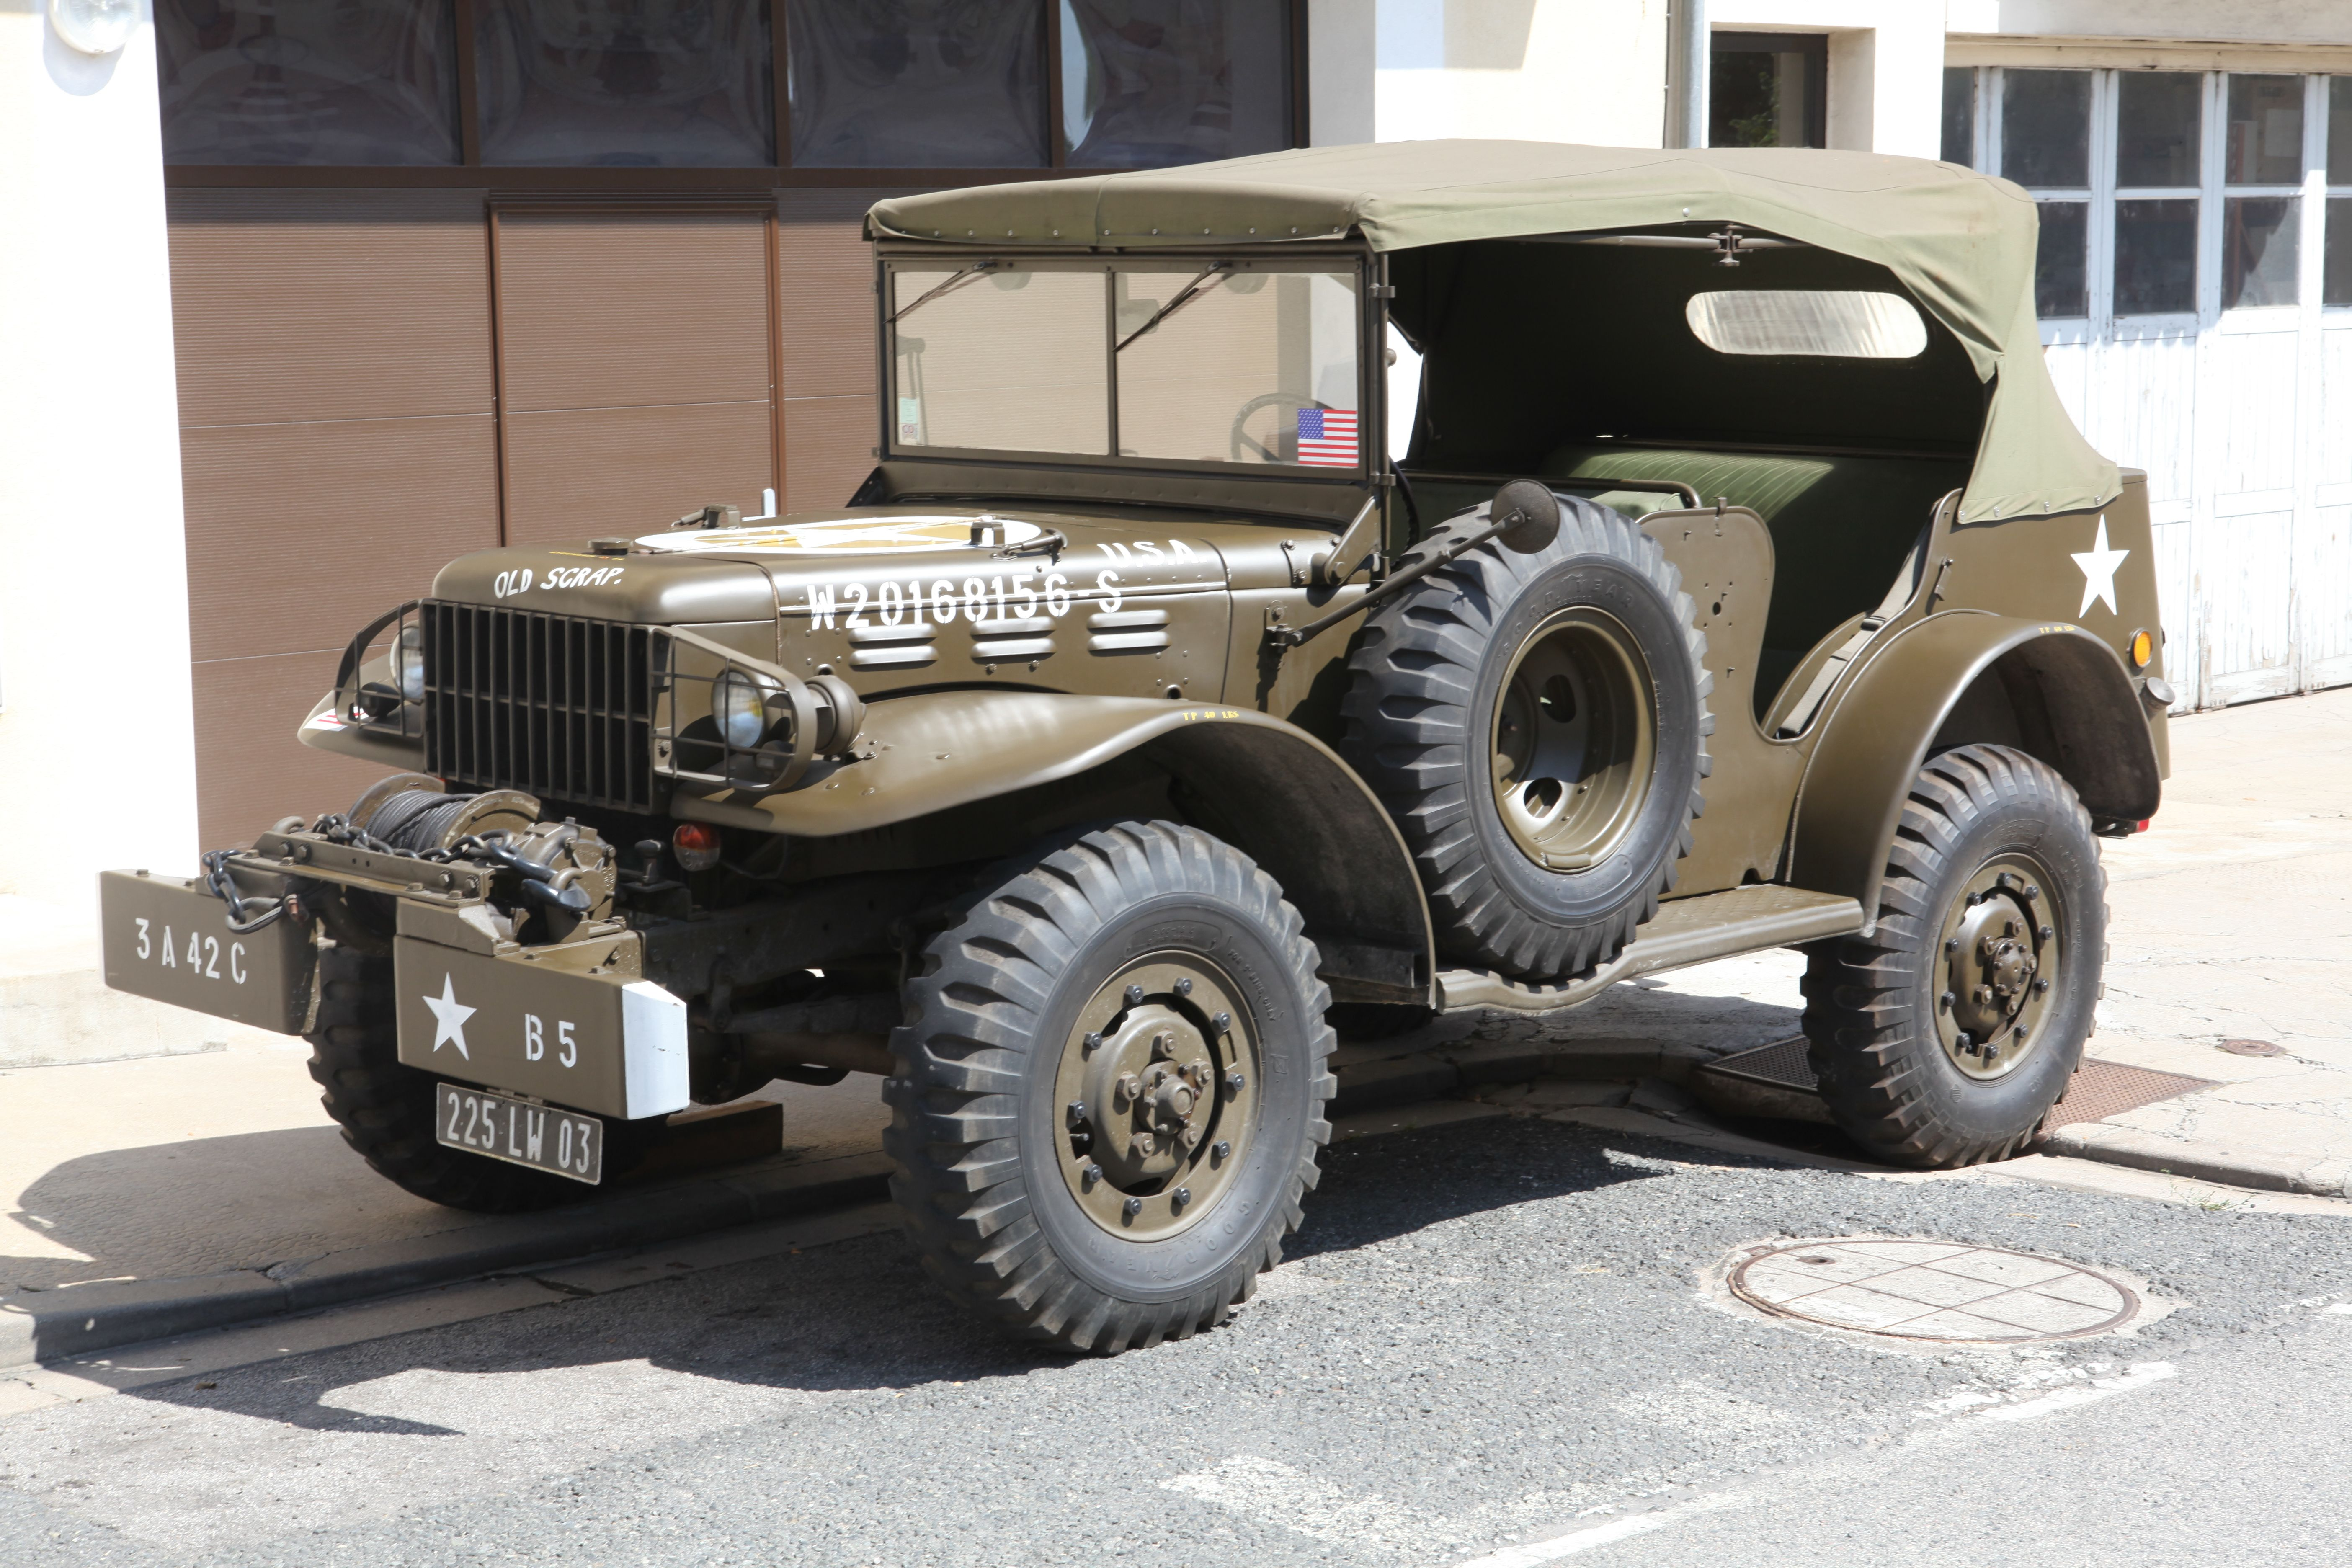 Dodge trucks in wwii - 1942 Dodge Command Car W56 3 4 Ton World War Ii Vehicle For Sale By Mecum Auction Anything Every Thing With Wheels Pinterest Dodge Cars And Dodge